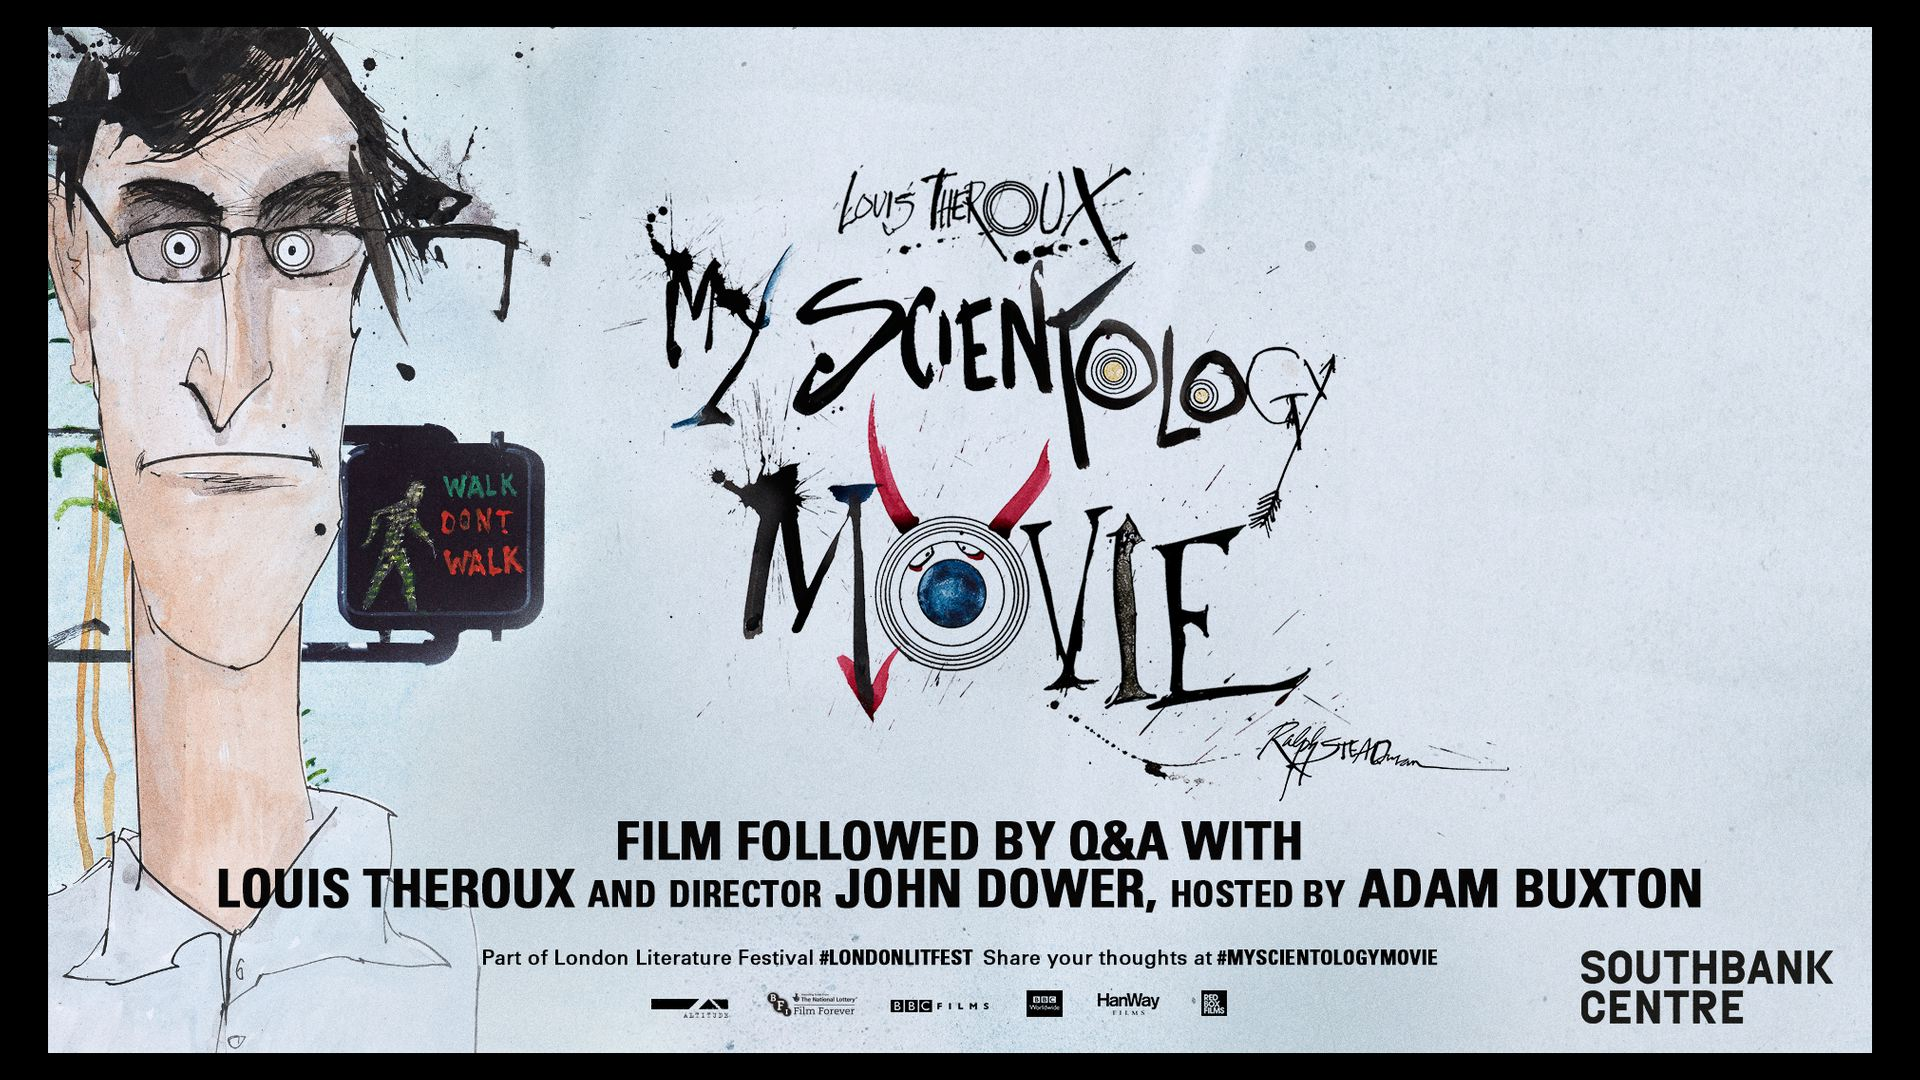 My Scientology Movie - Satellite Q&A